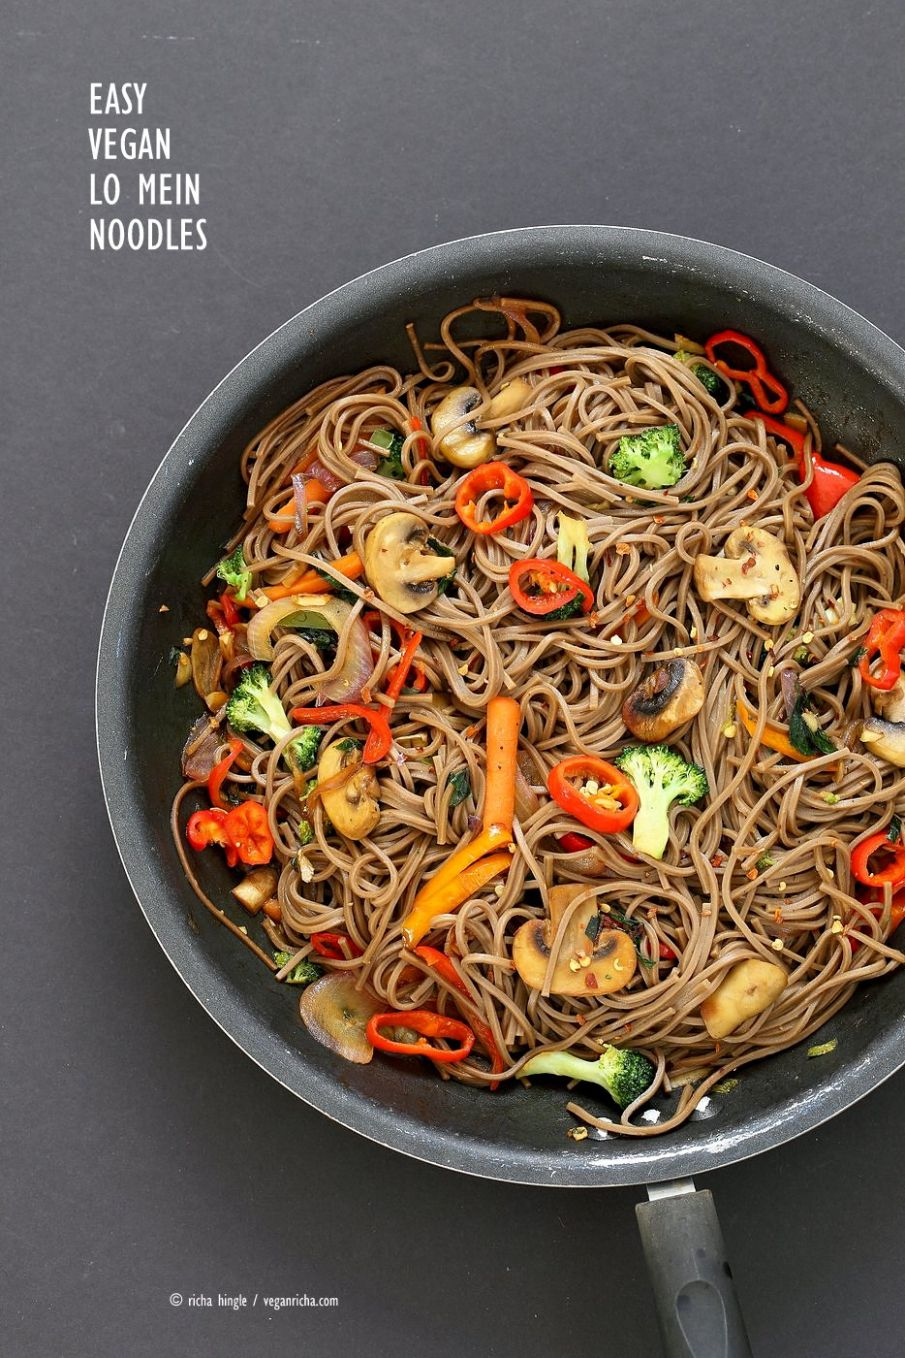 Vegan Vegetable Lo Mein with Soba Noodles